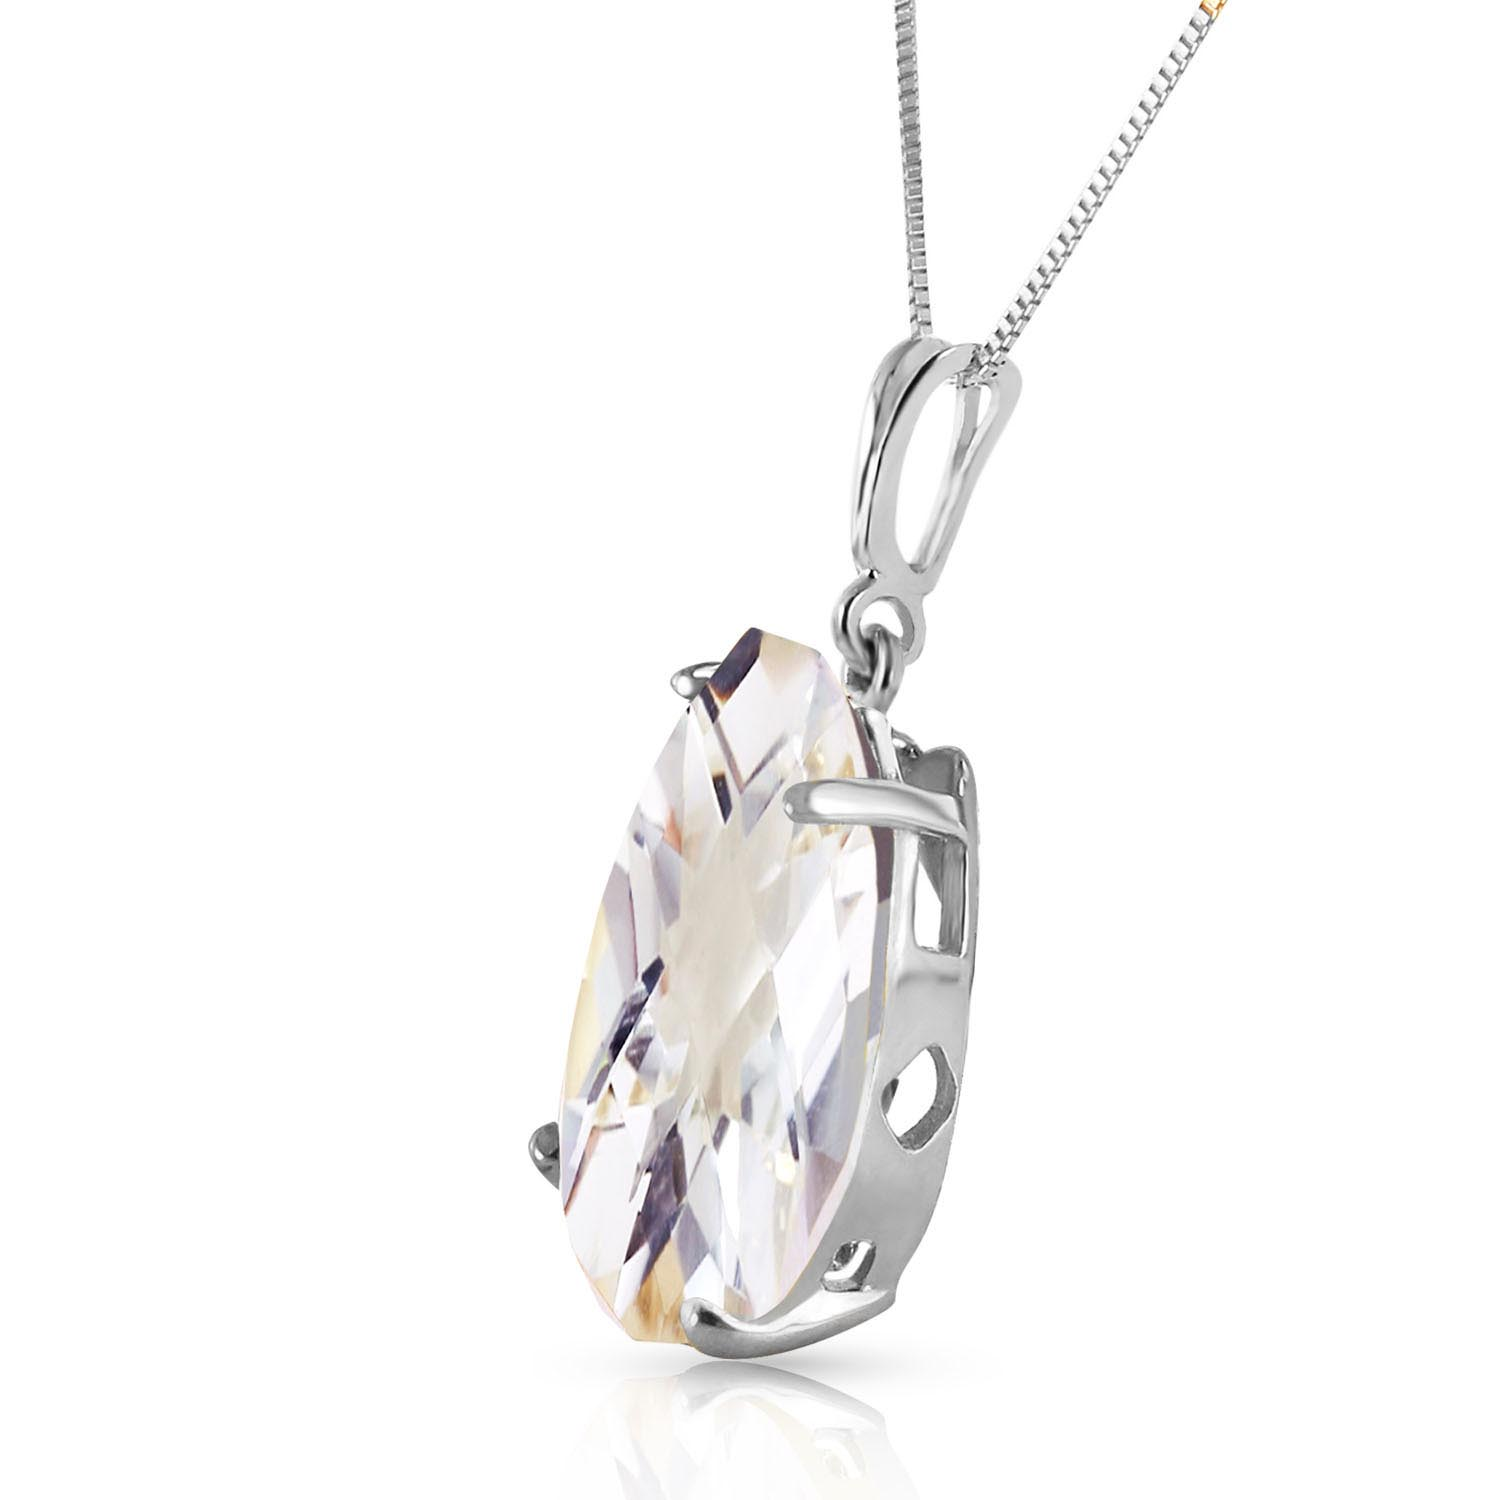 Pear Cut White Topaz Pendant Necklace 5.0ct in 14K White Gold